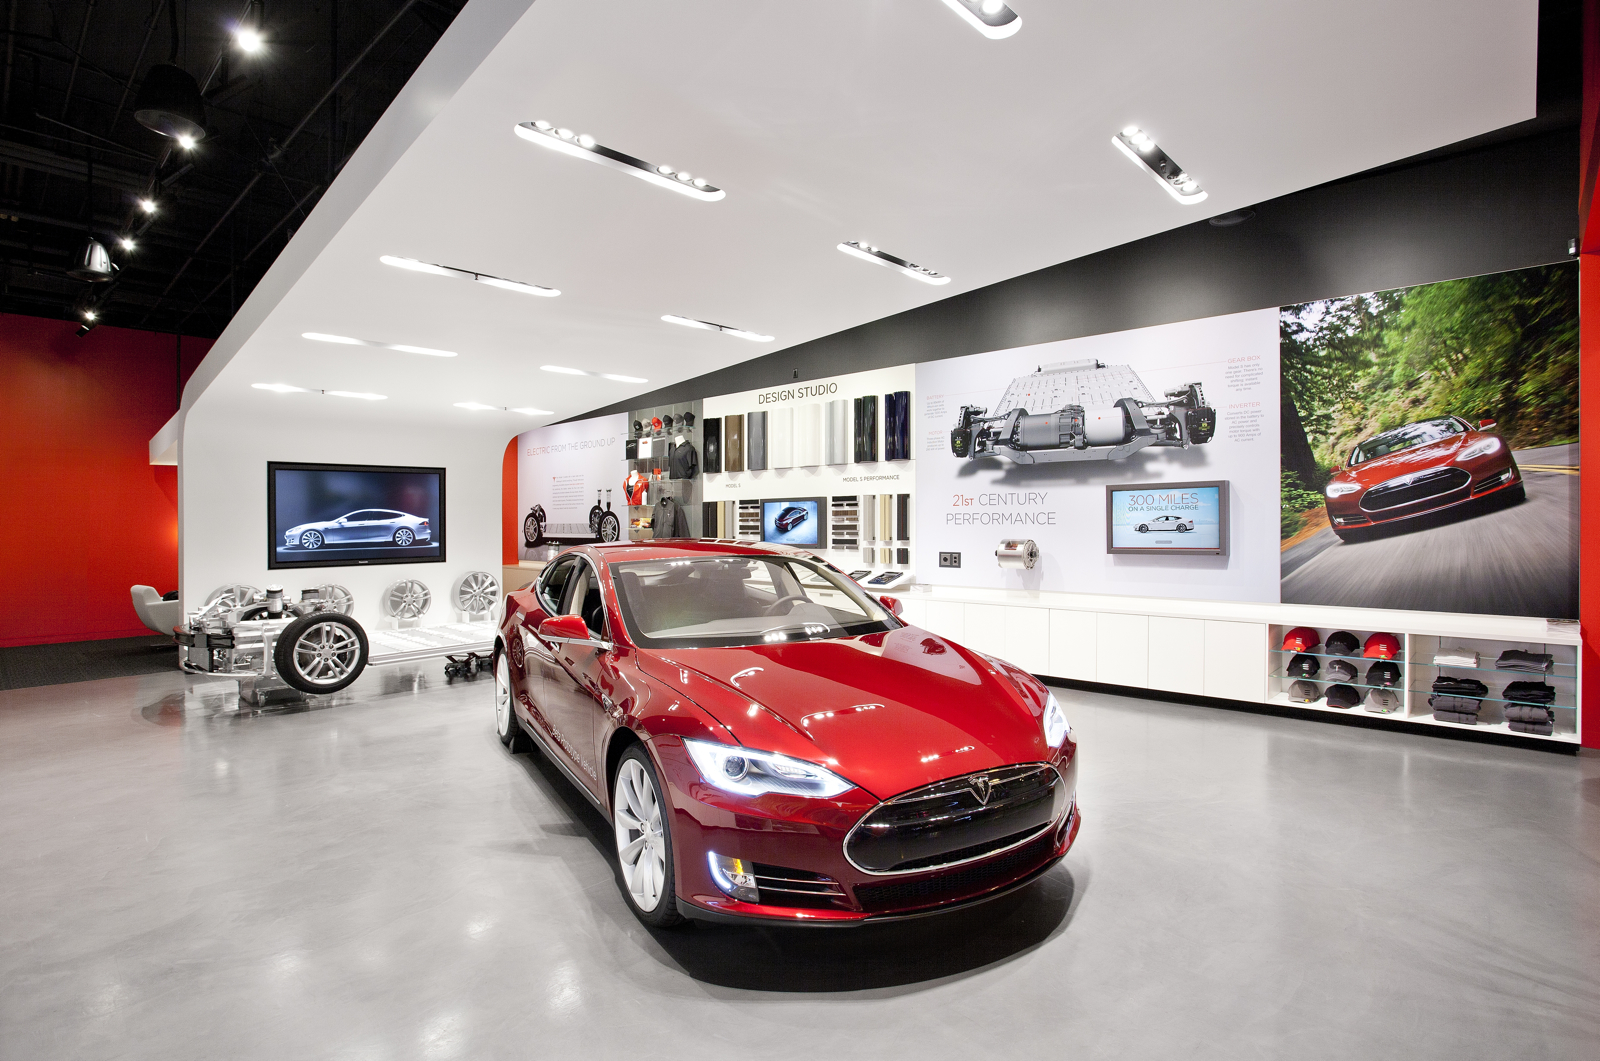 Audi Dealership Houston >> Auto Dealer Groups Escalate Battle Against Tesla Stores